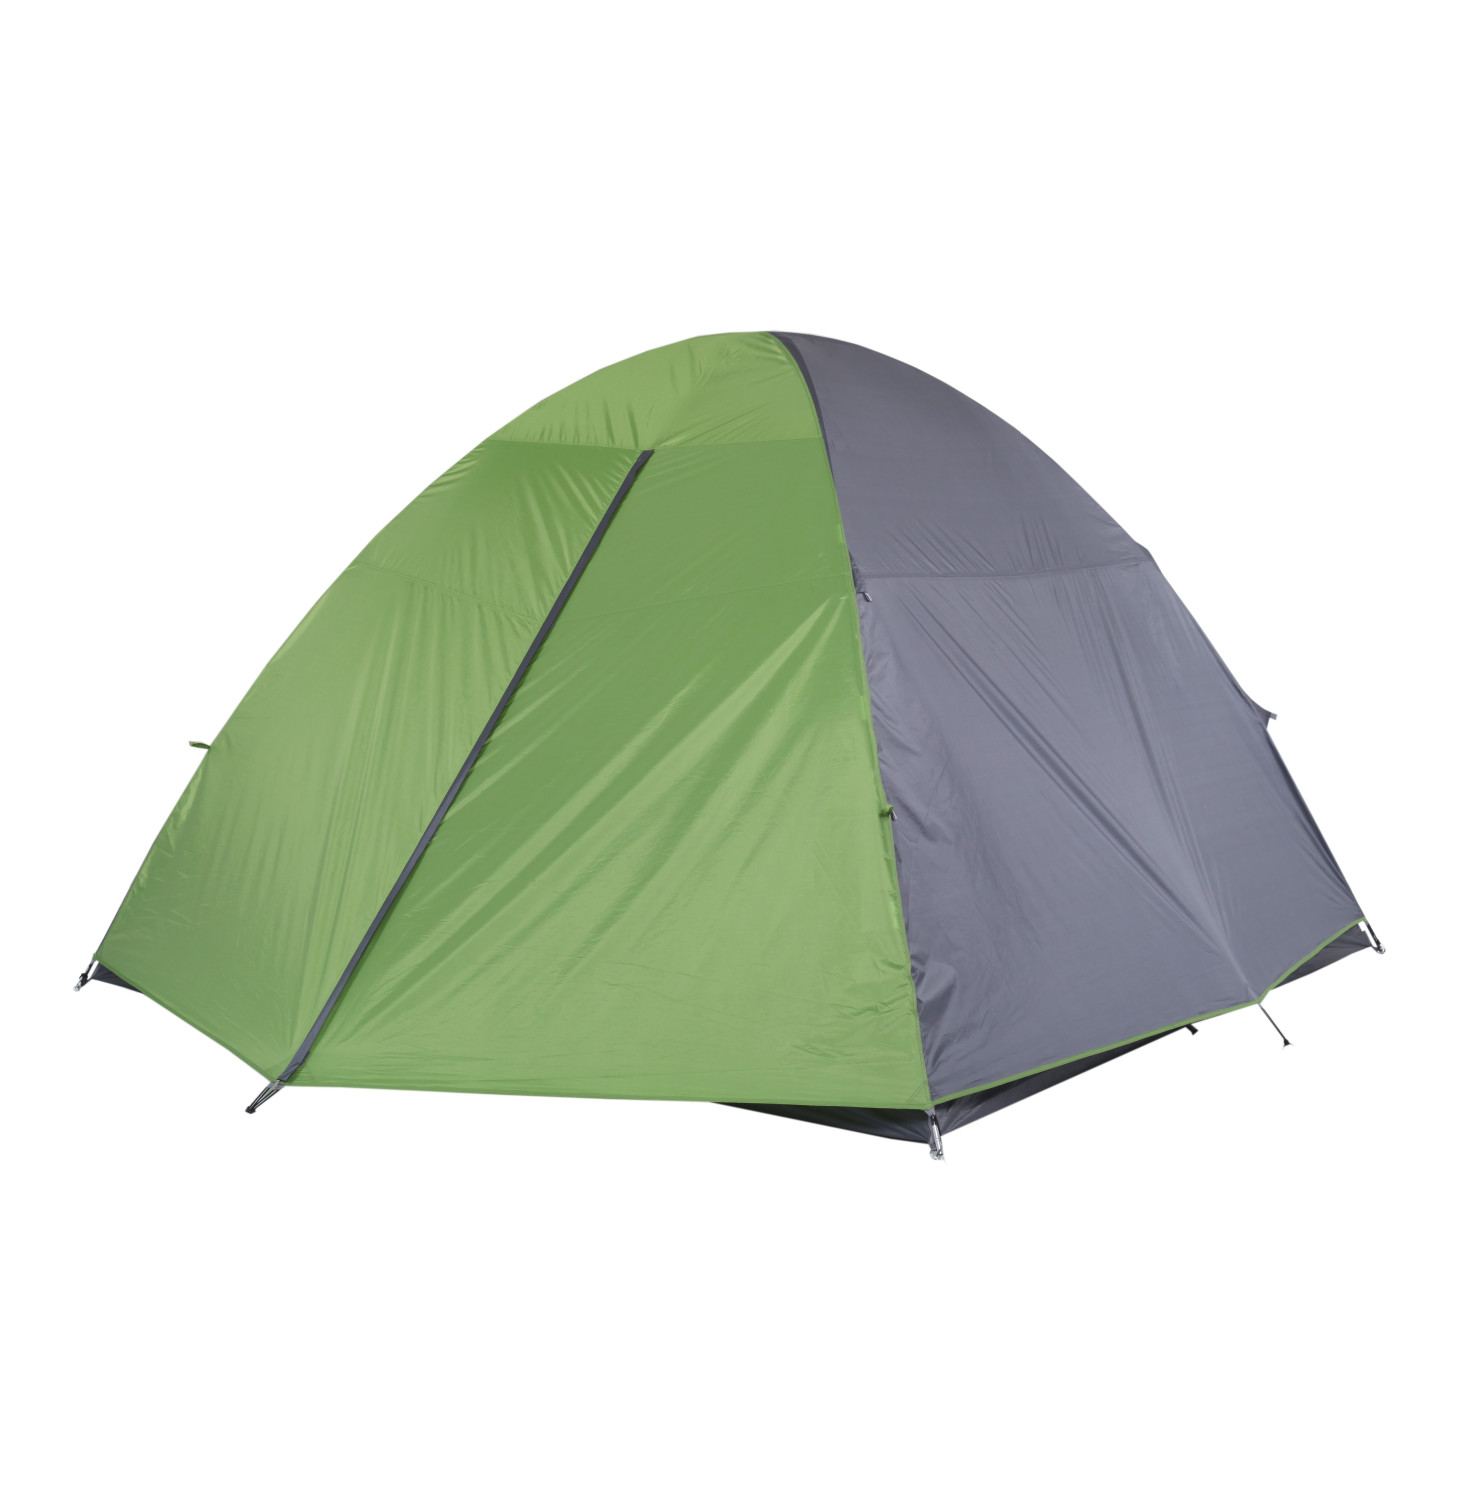 CAMPMASTER CAMP DOME 500. 5 SLEEPER BRAND NEW DEMO TENT